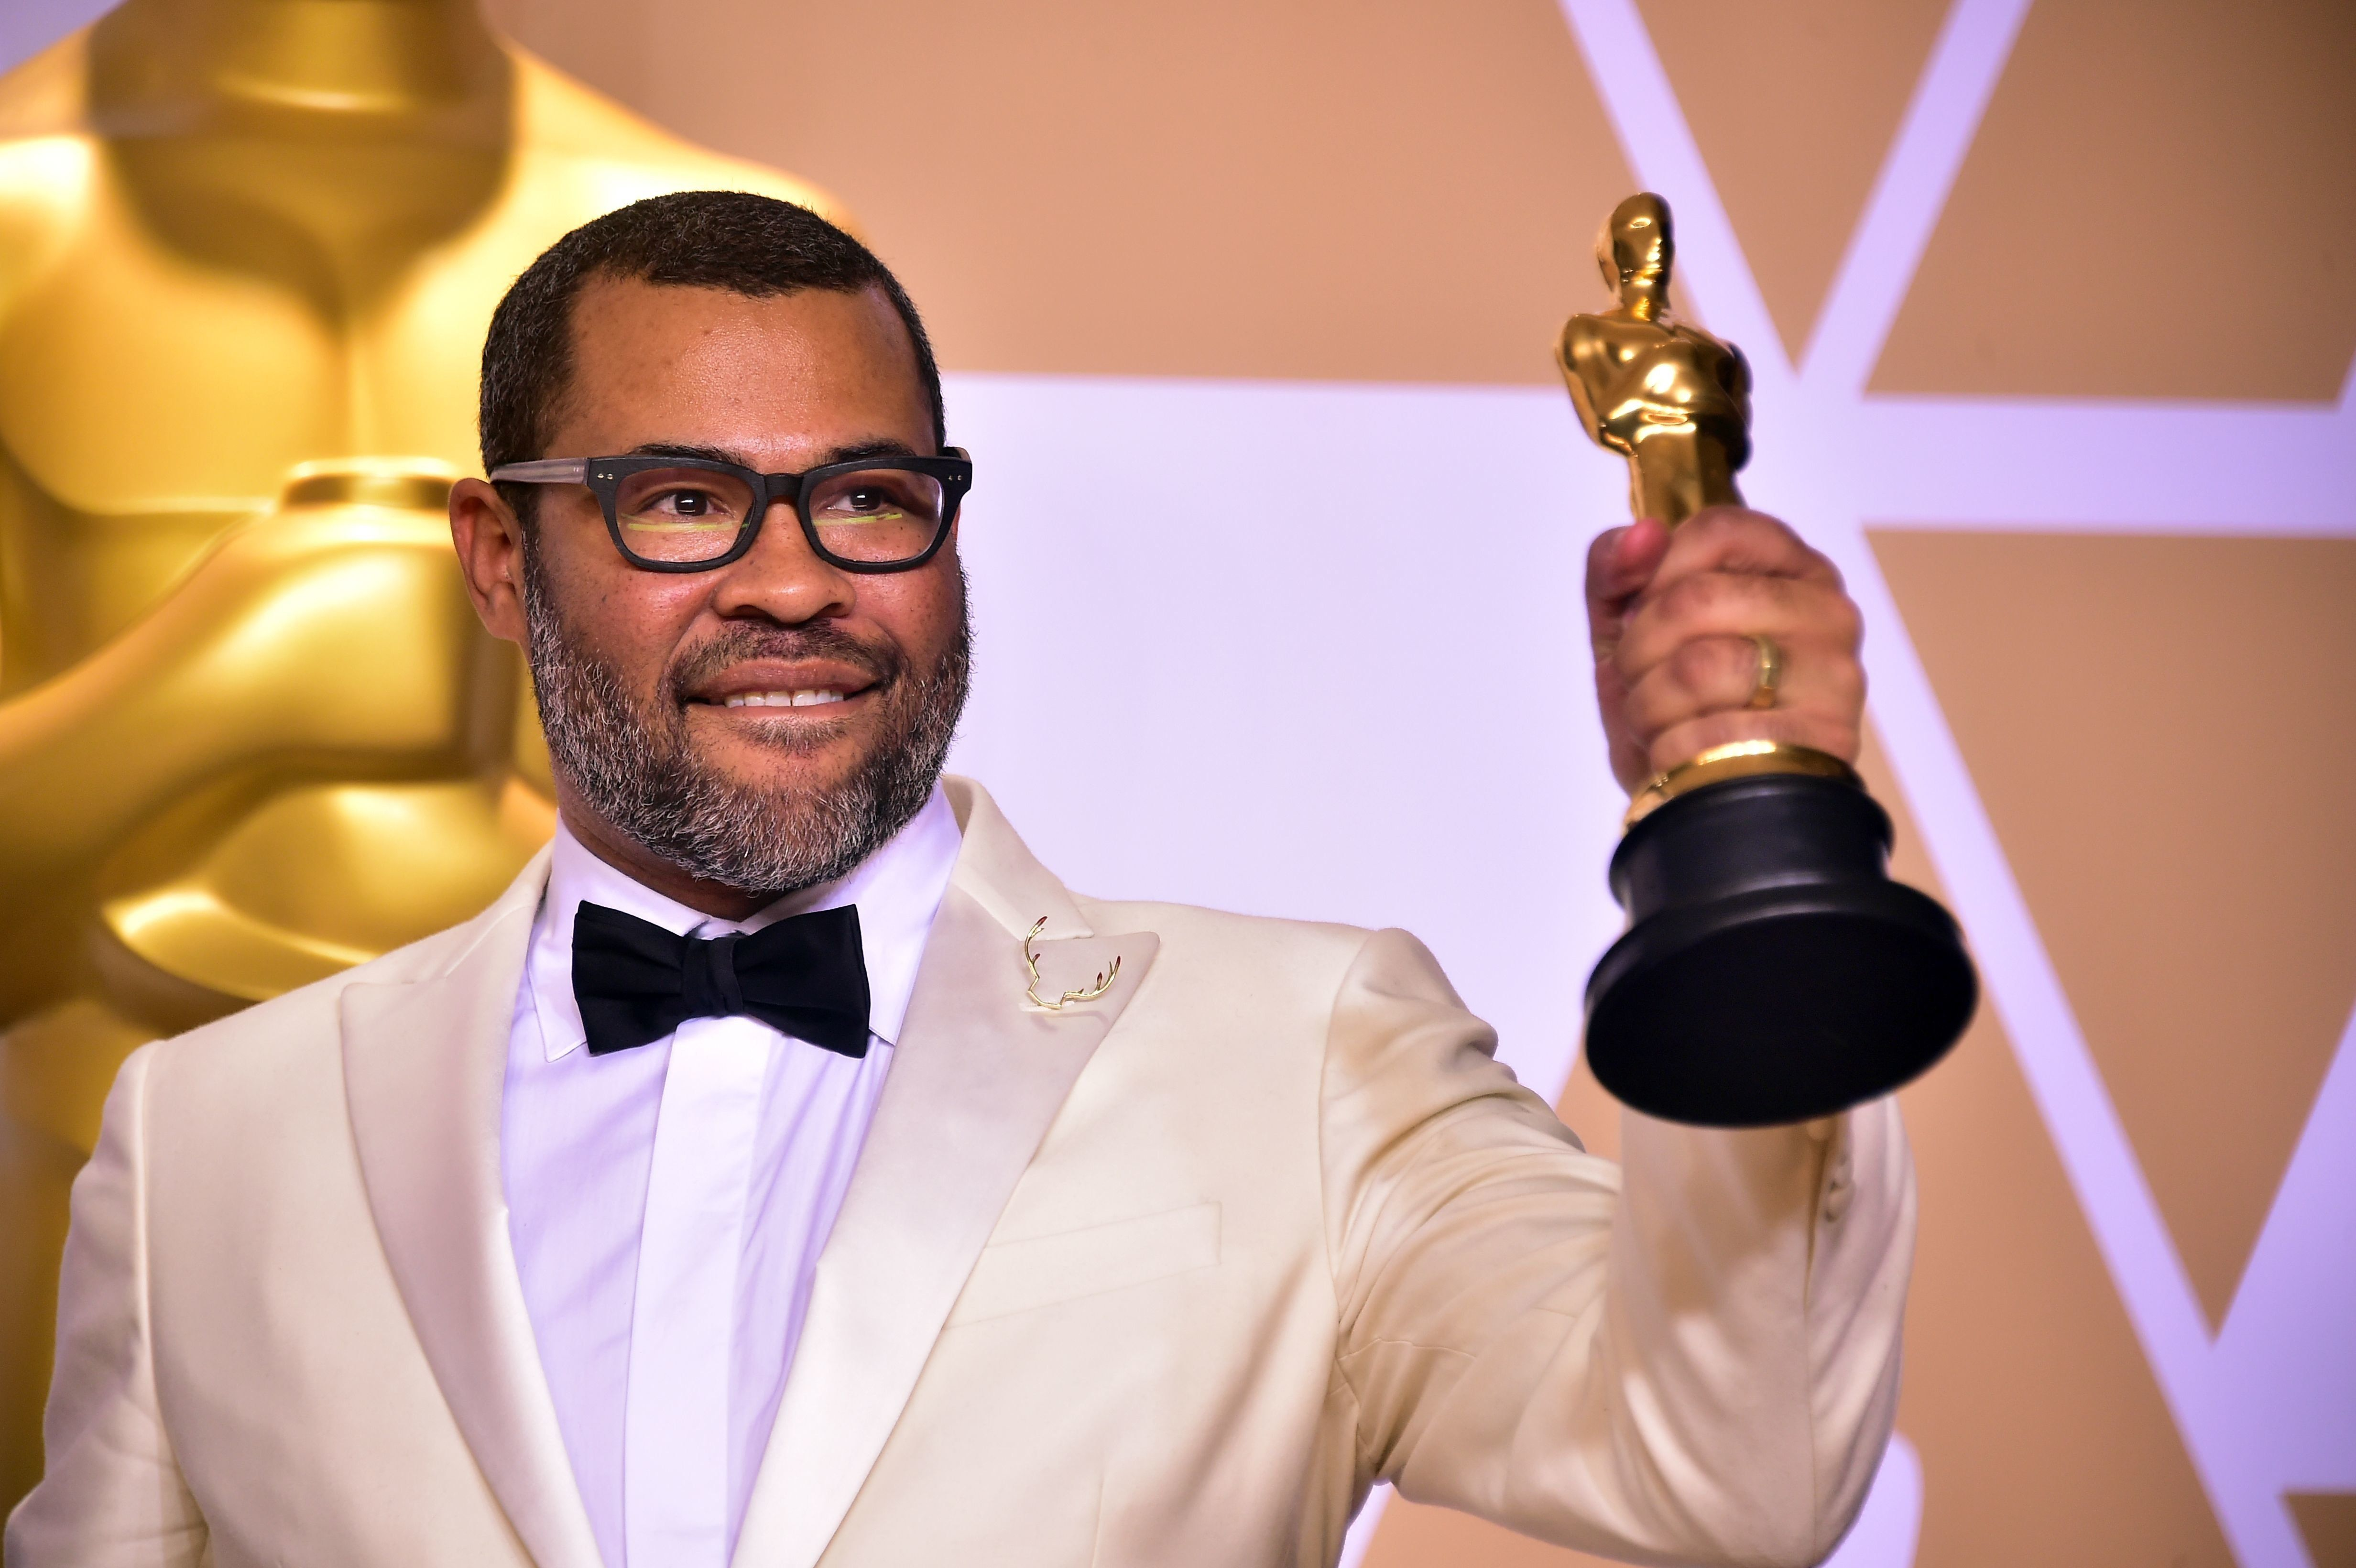 Director Jordan Peele poses in the press room with the Oscar for best original screenplay during the 90th Annual Academy Awards on March 4, 2018, in Hollywood, California.  / AFP PHOTO / FREDERIC J. BROWN        (Photo credit should read FREDERIC J. BROWN/AFP/Getty Images)